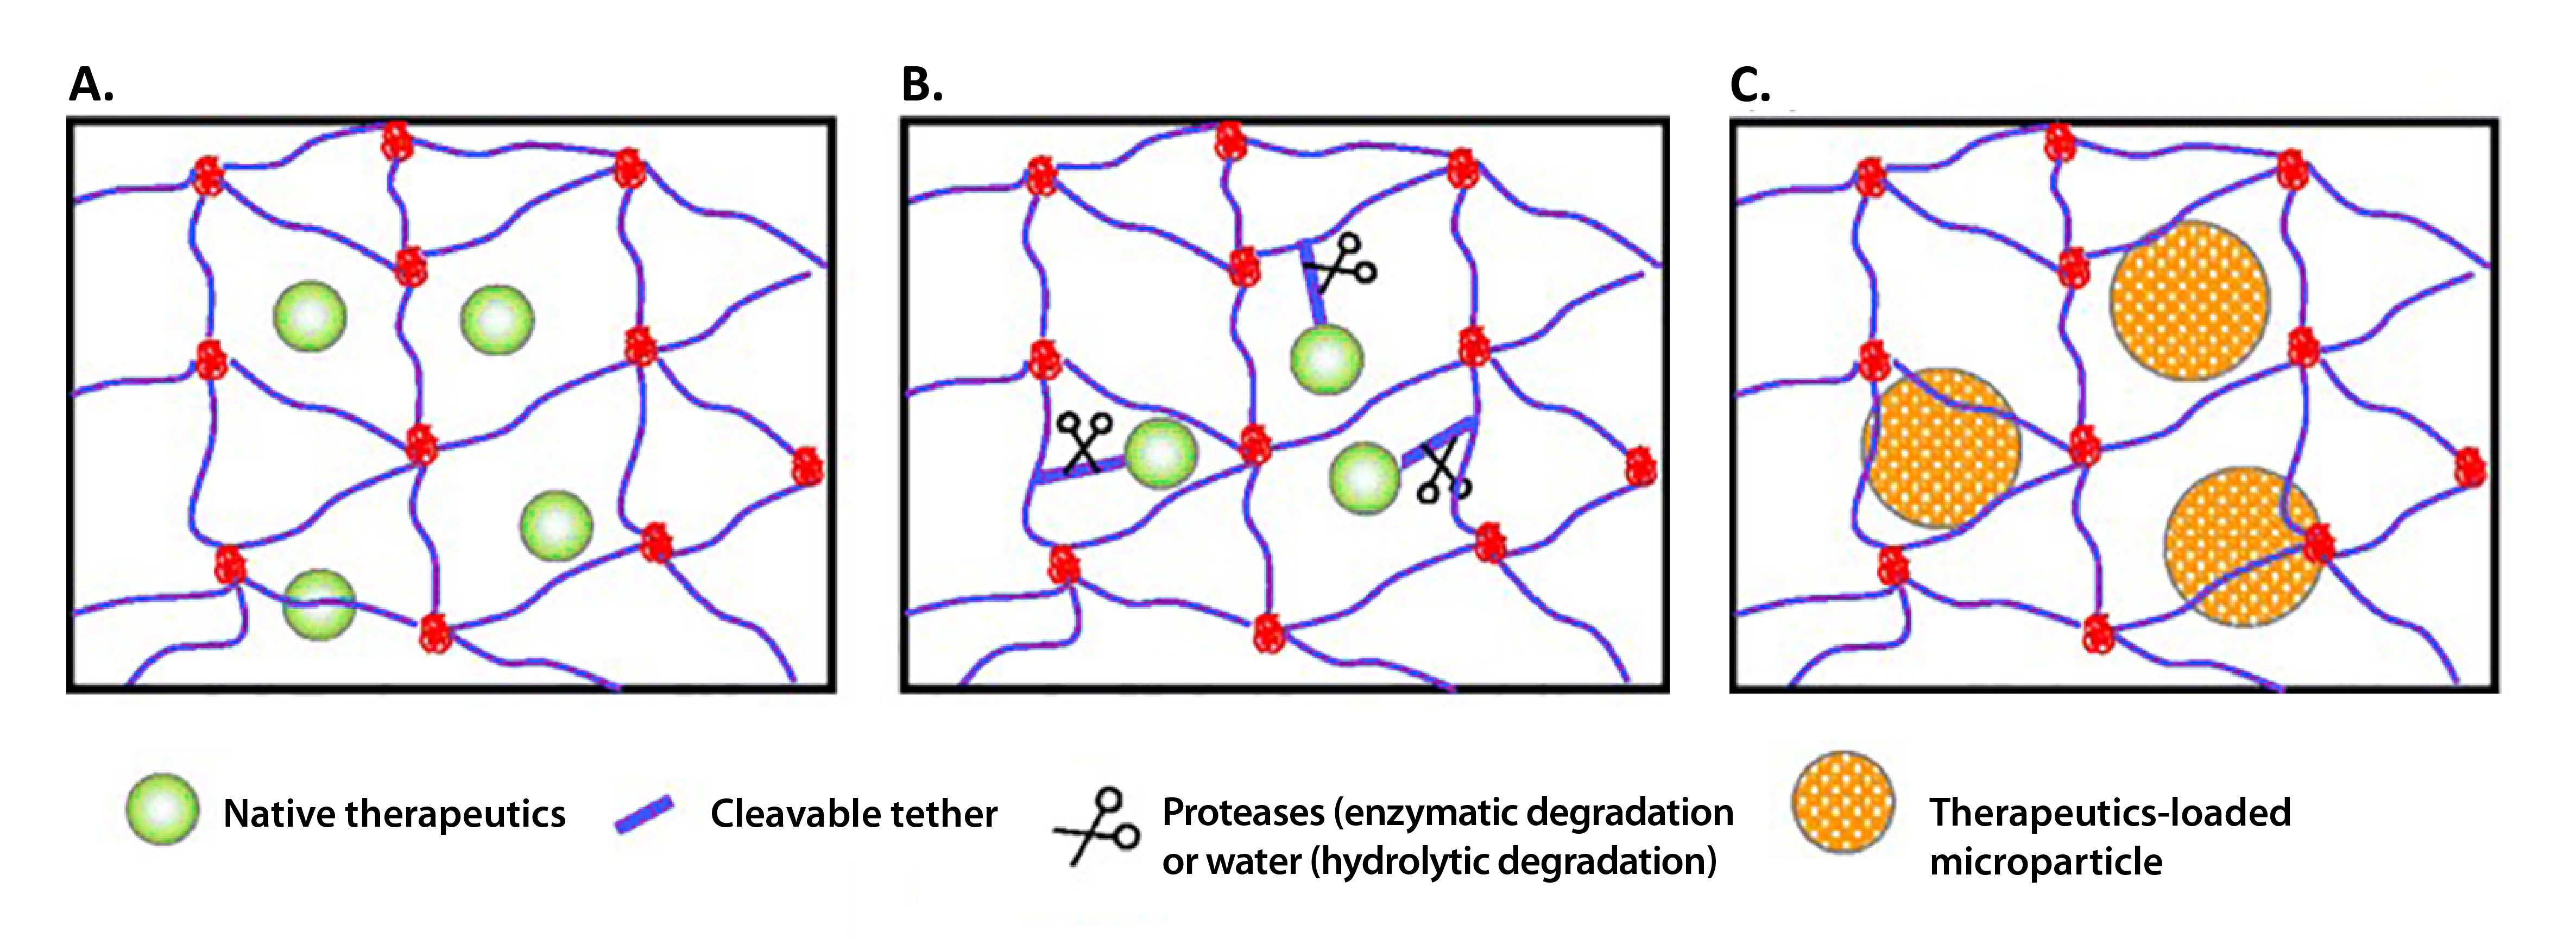 chematic structures of PEG hydrogels formed via: A chain-growth, B step-growth, and C mixed-mode step and chain growth polymerization.